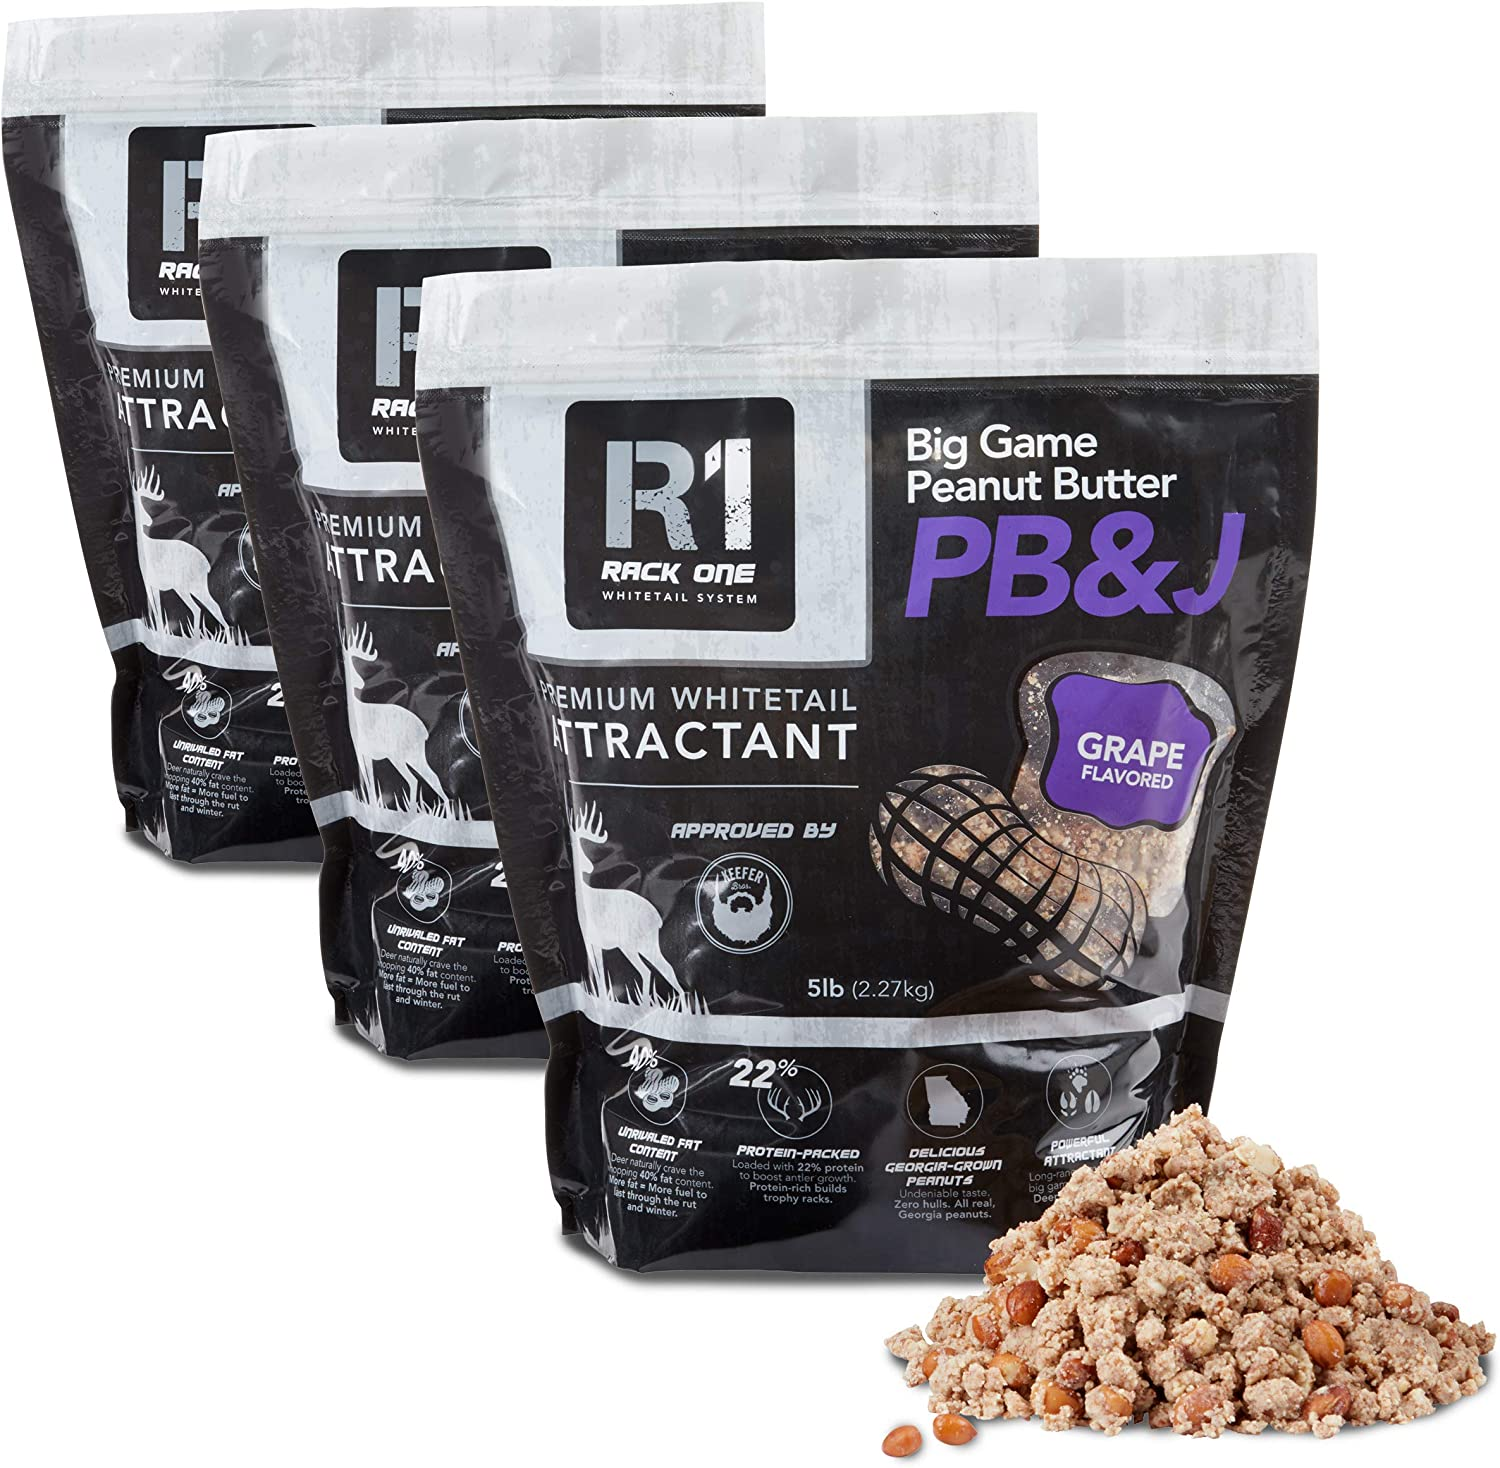 Rack One Big Game Peanut Butter Premium Whitetail Deer Attractant | 5 Lb Bags | 3 Pack | Grape Flavor | 100% Shelled Peanuts, Deer Feed Protein Supplement, Works as Bear & Hog Attractant